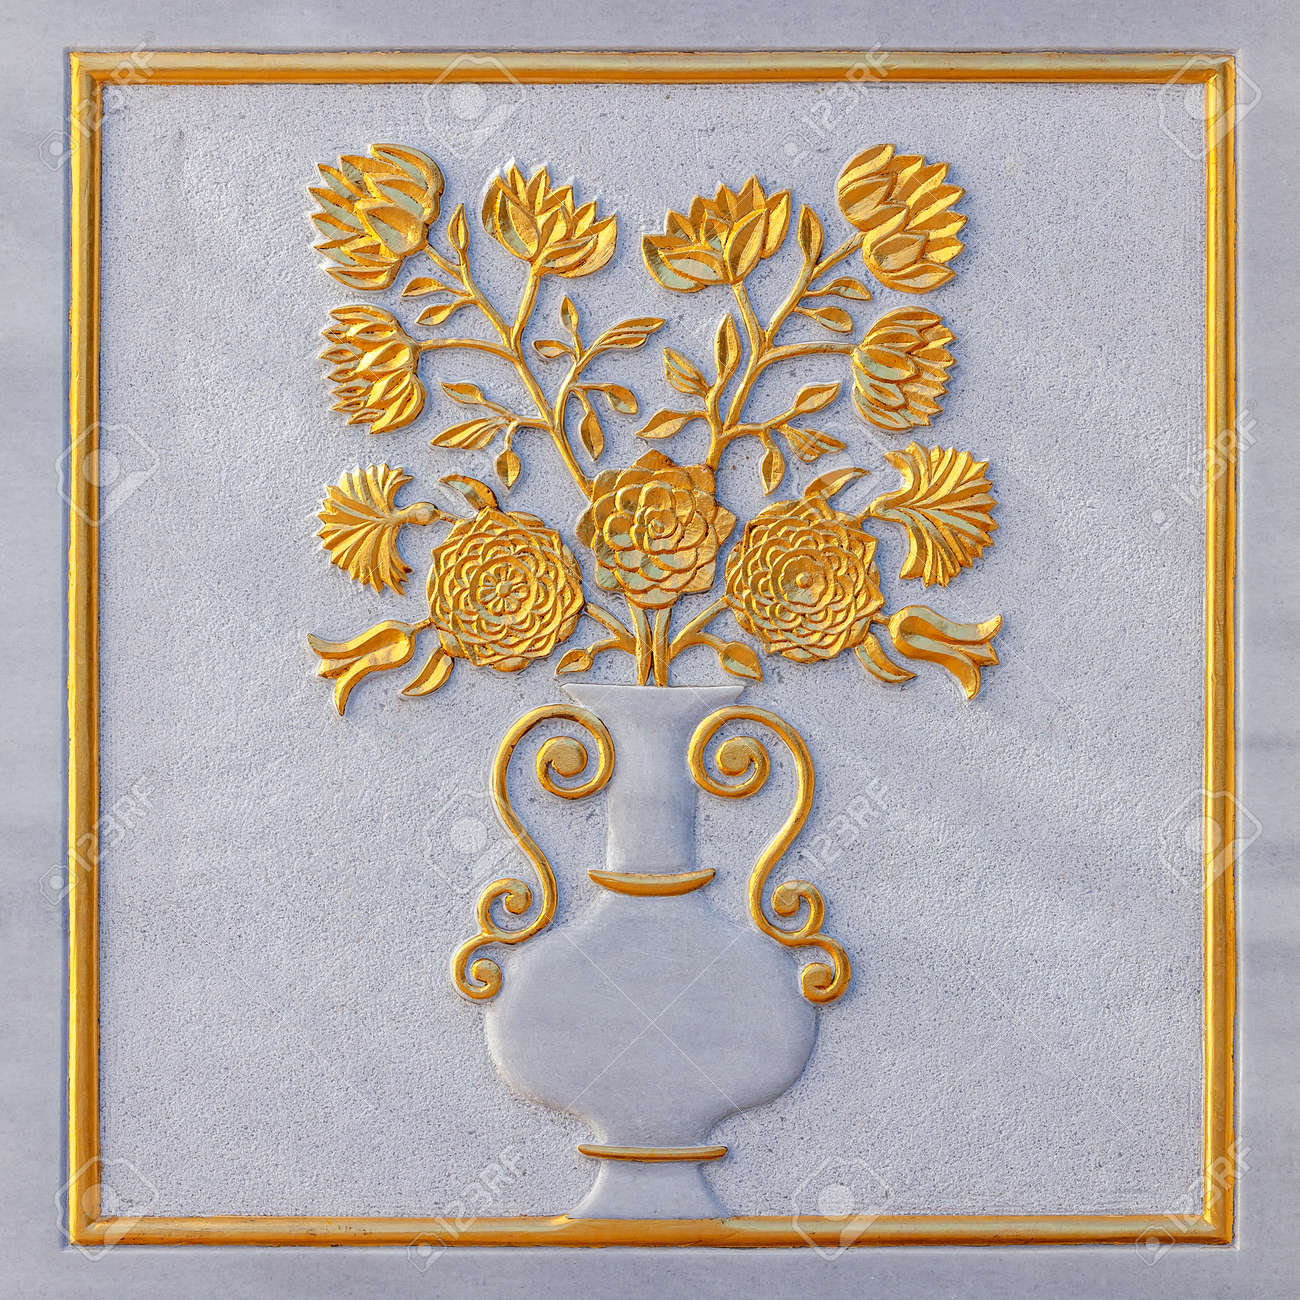 Flowers and vase carved from white marble relief with golden foil - 173222567